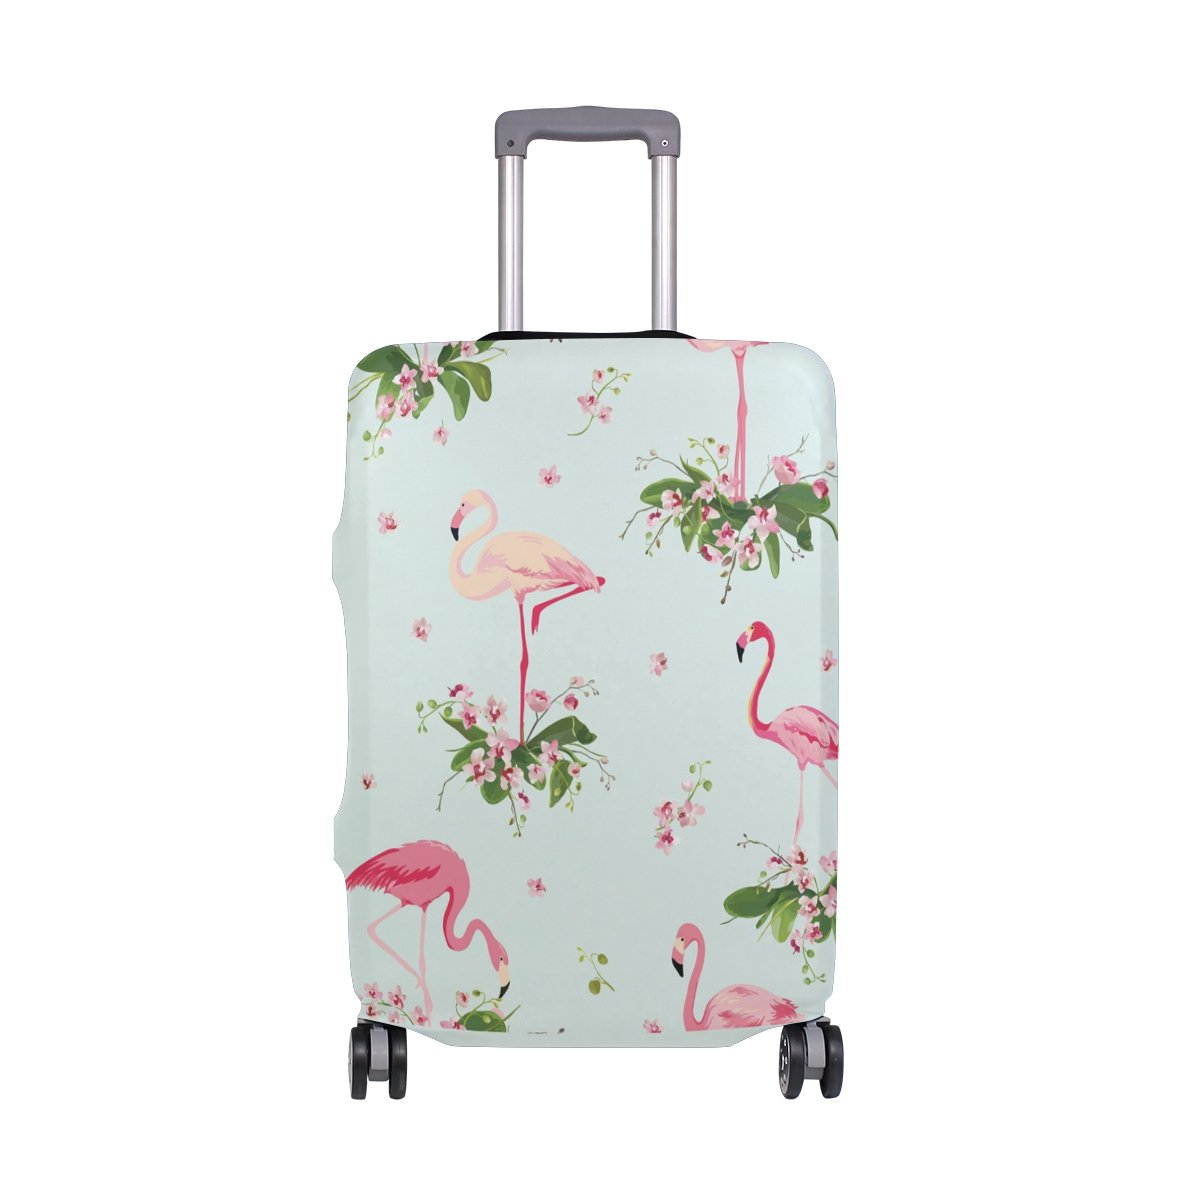 ZZKKO Summer Tropical Orchid Flowers Flamingo Travel Luggage Cover Suitcase Protector Bag - Fits 18-20 Inches Luggage